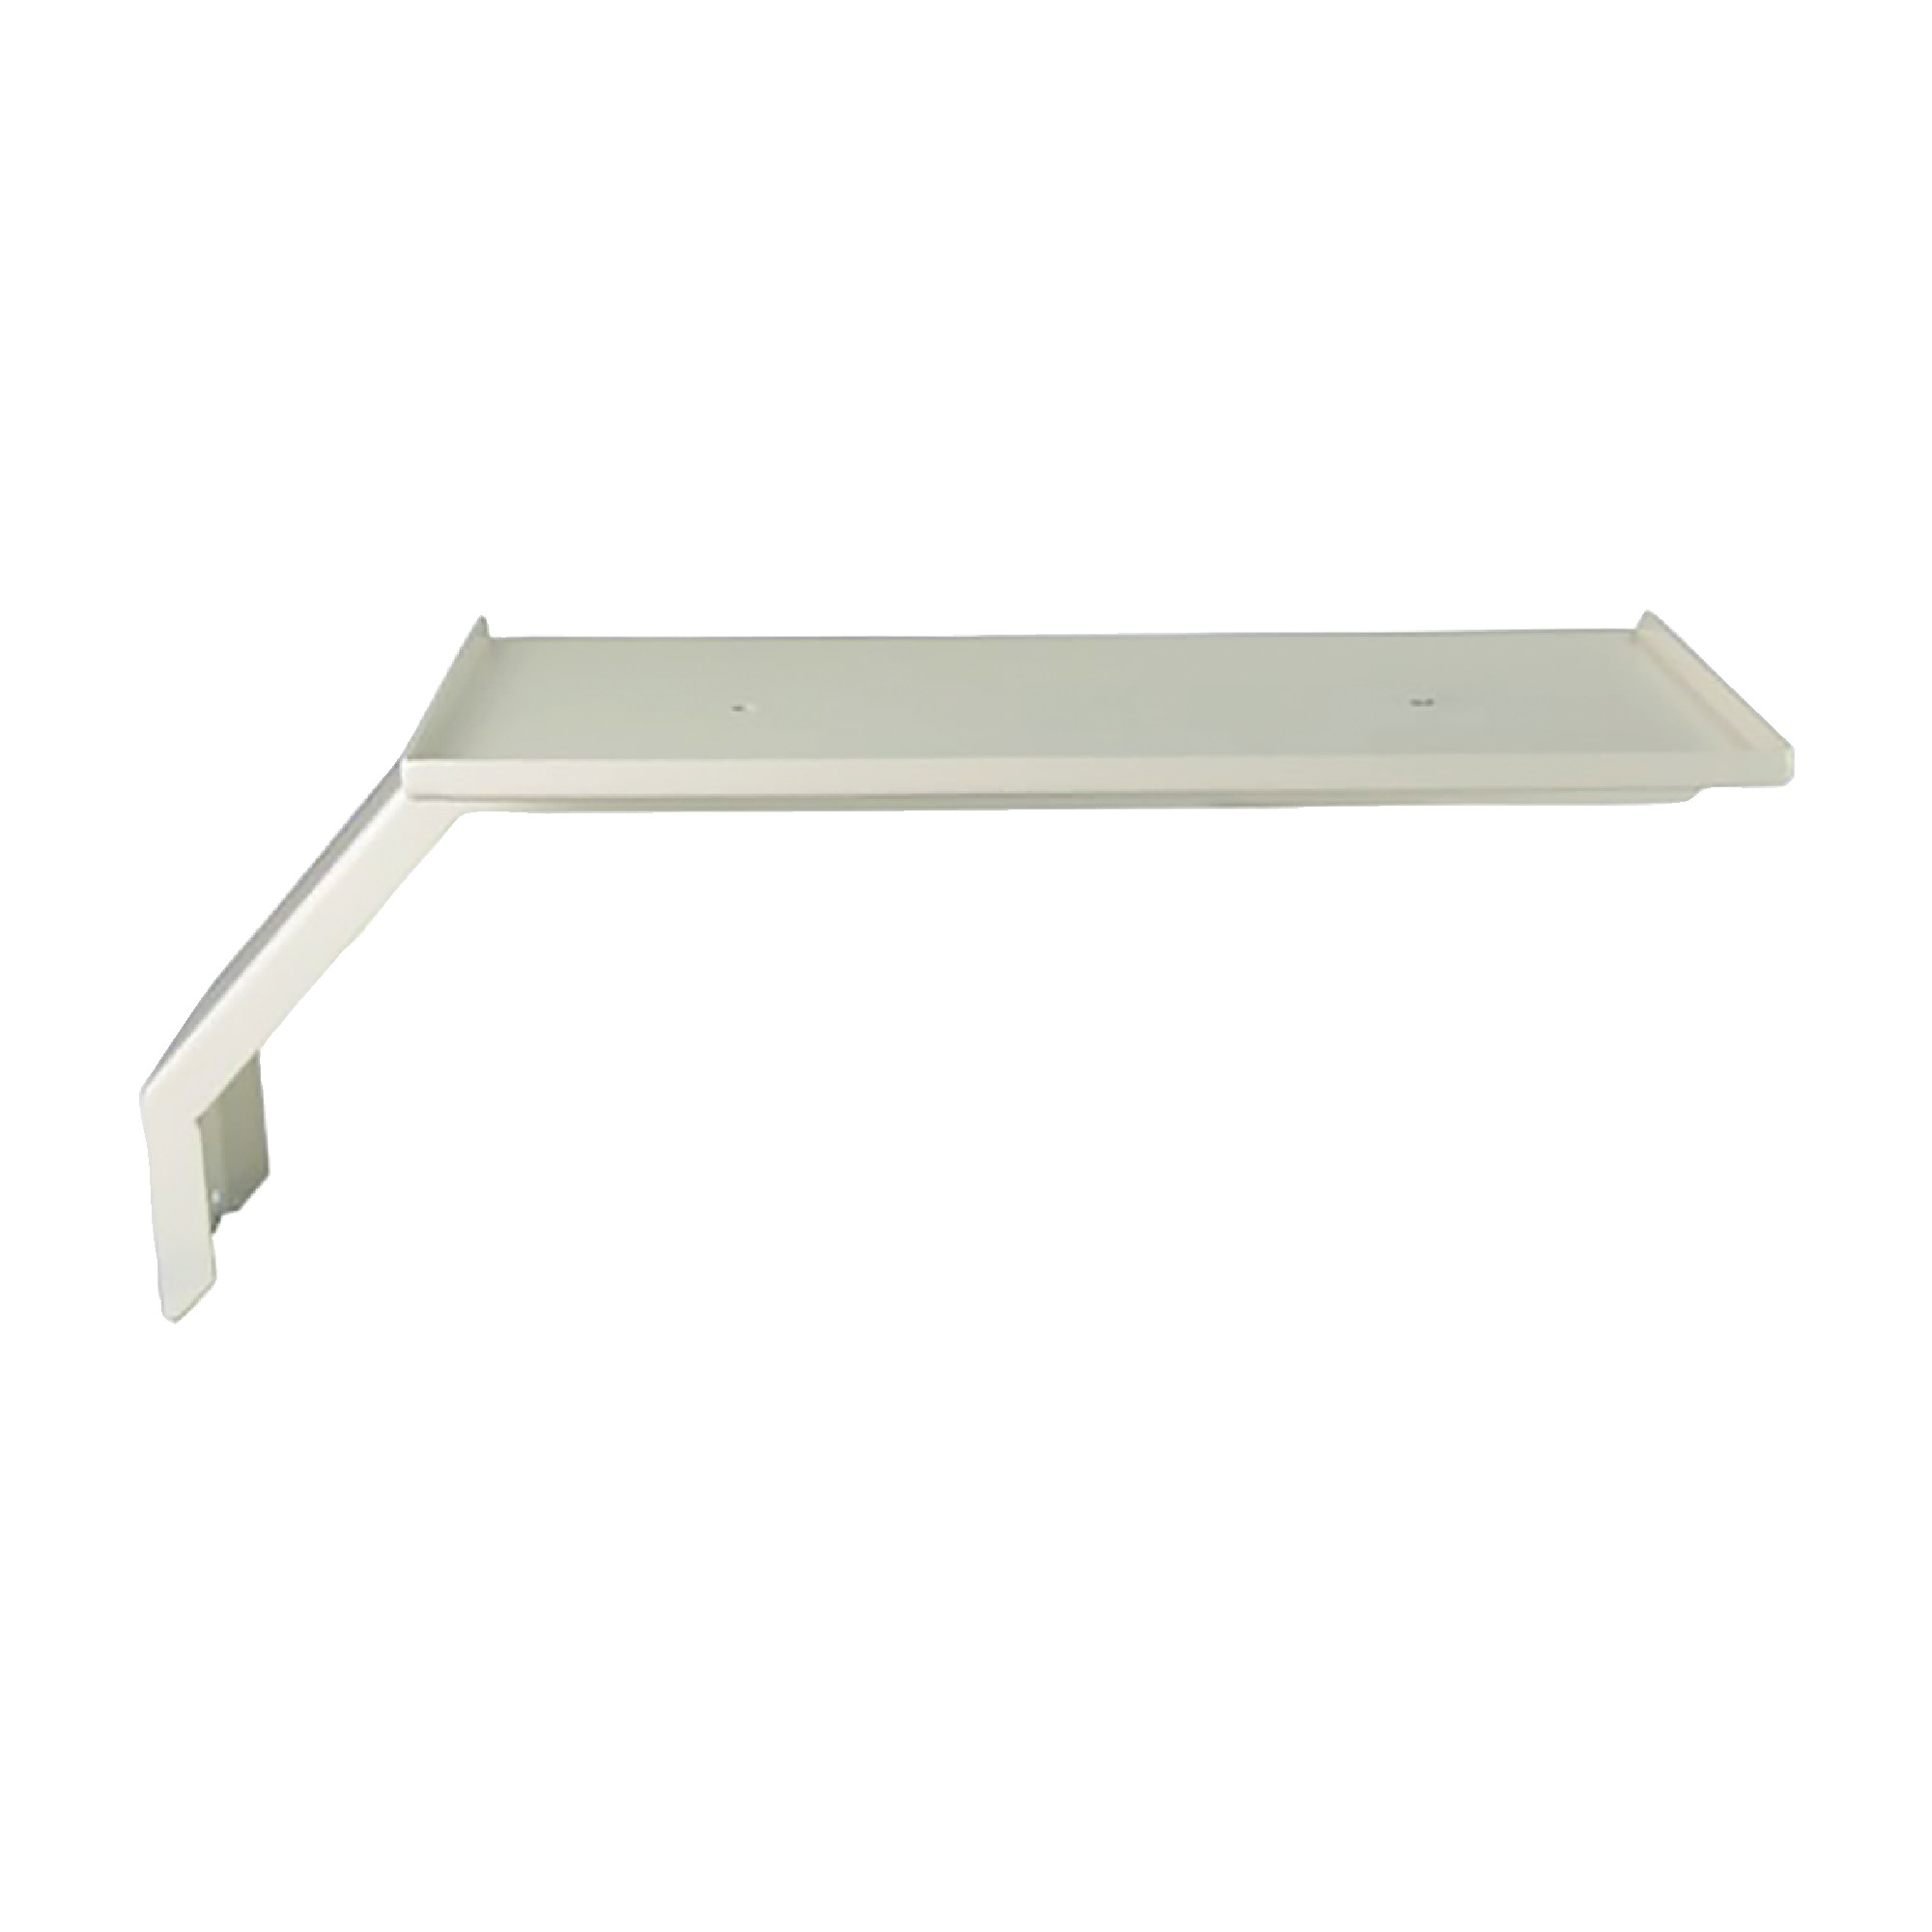 Counter Tray & Arm For 174-173A